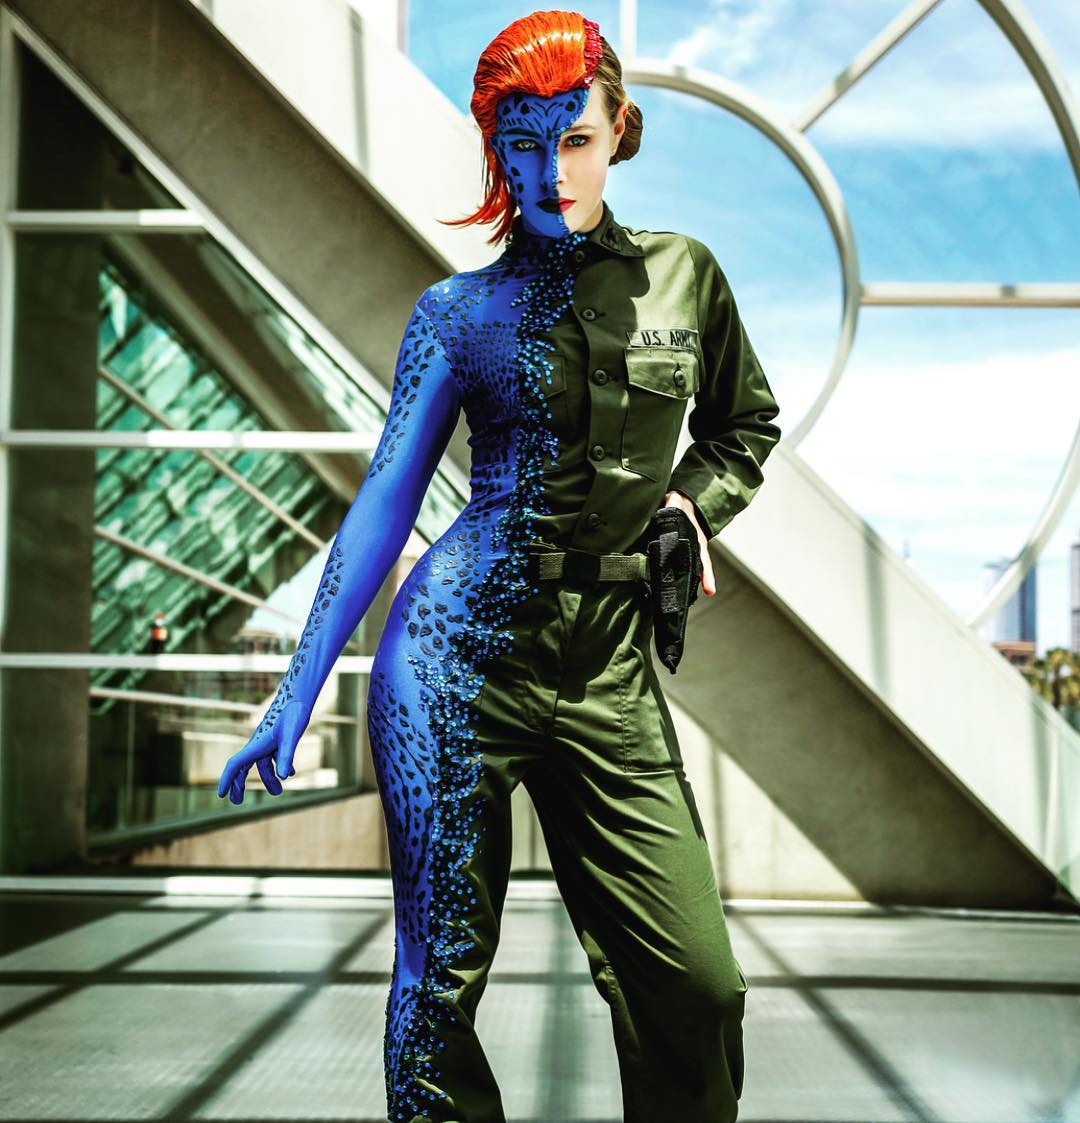 Evy Thomas as Mystique